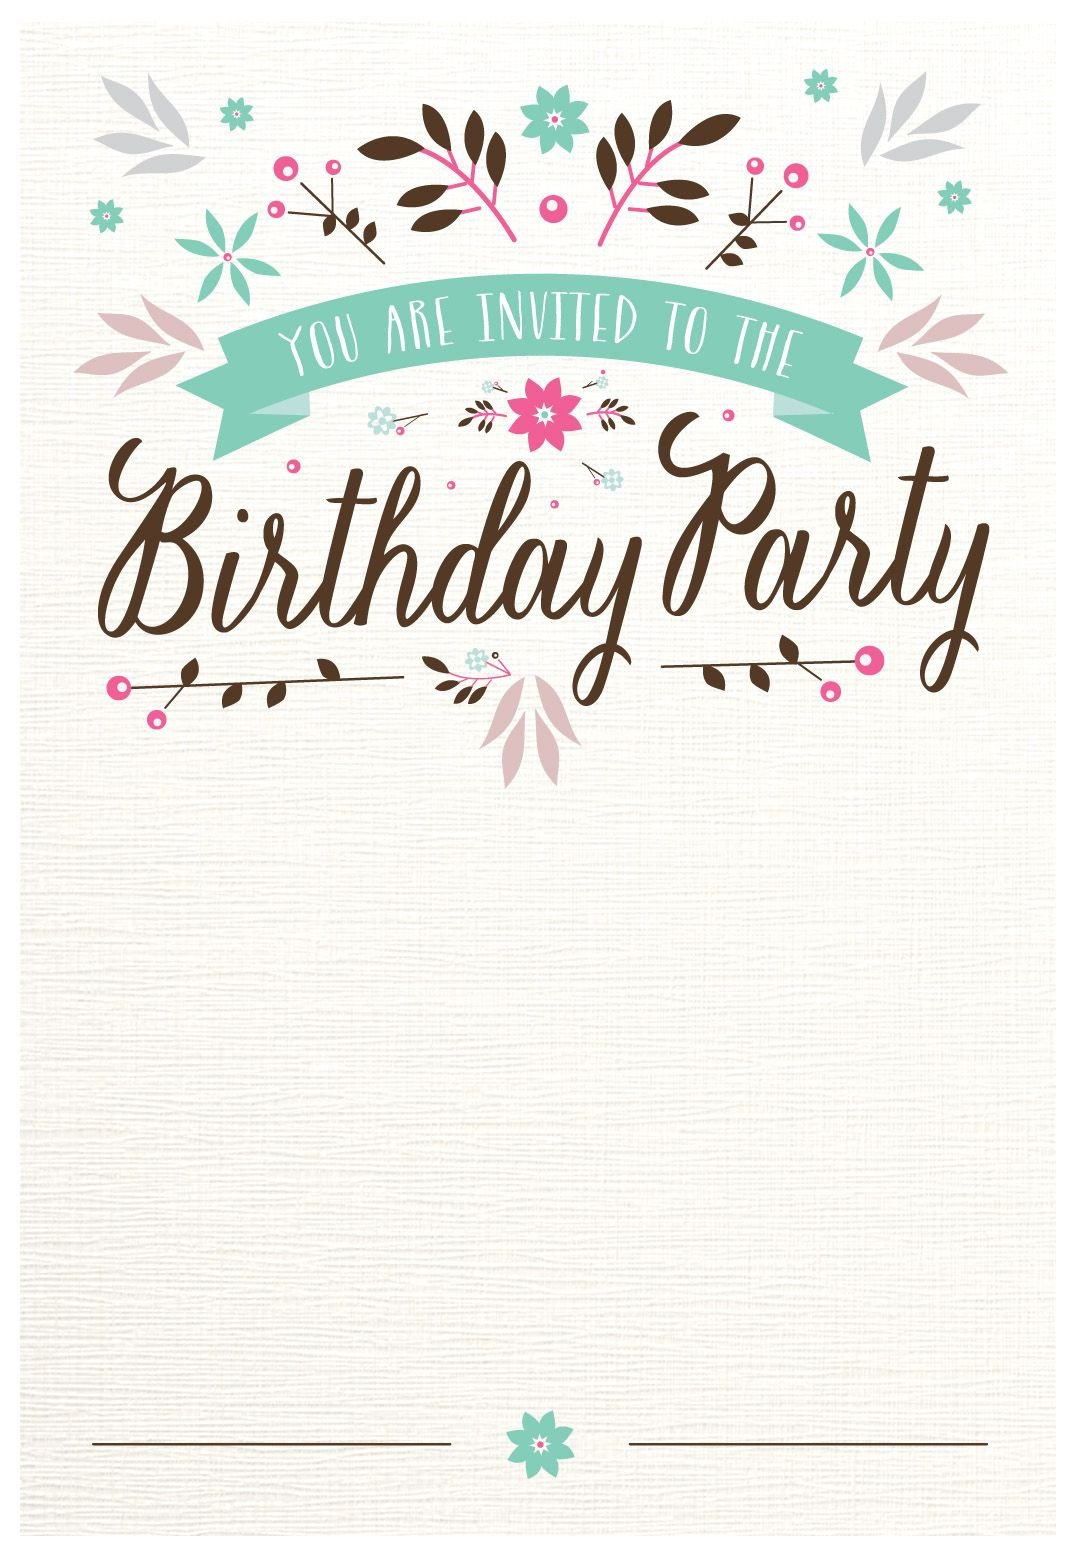 Birthday Card Template Free Flat Floral Free Printable Birthday Invitation Template